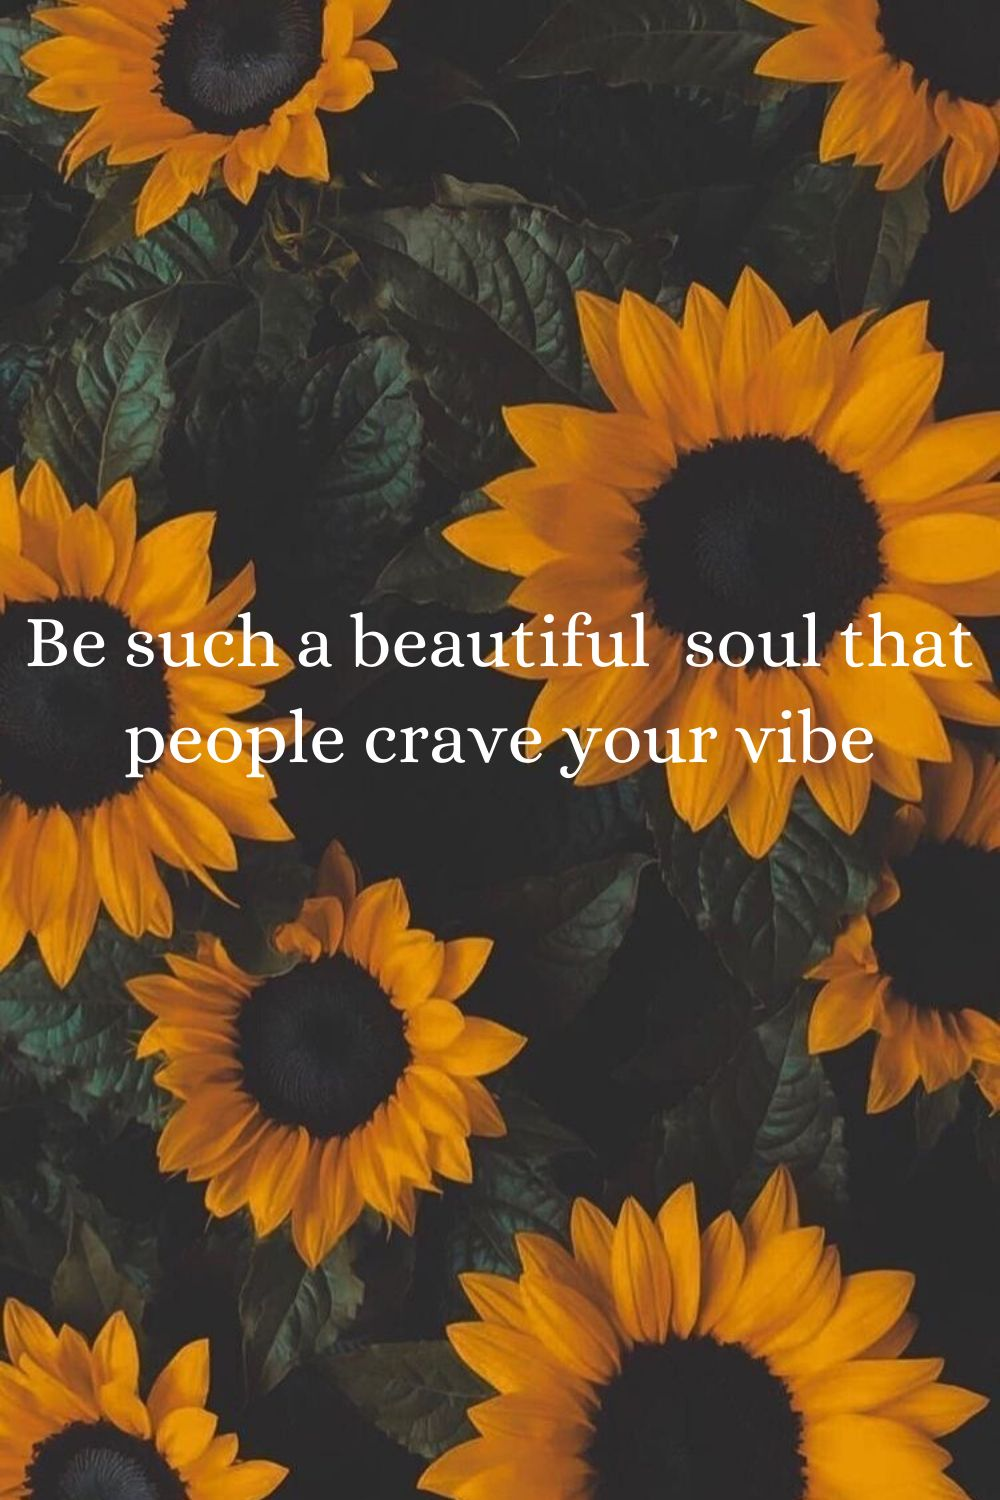 Beautiful Soul Sunflower Pictures Sunflower Wallpaper Sunflower Quotes